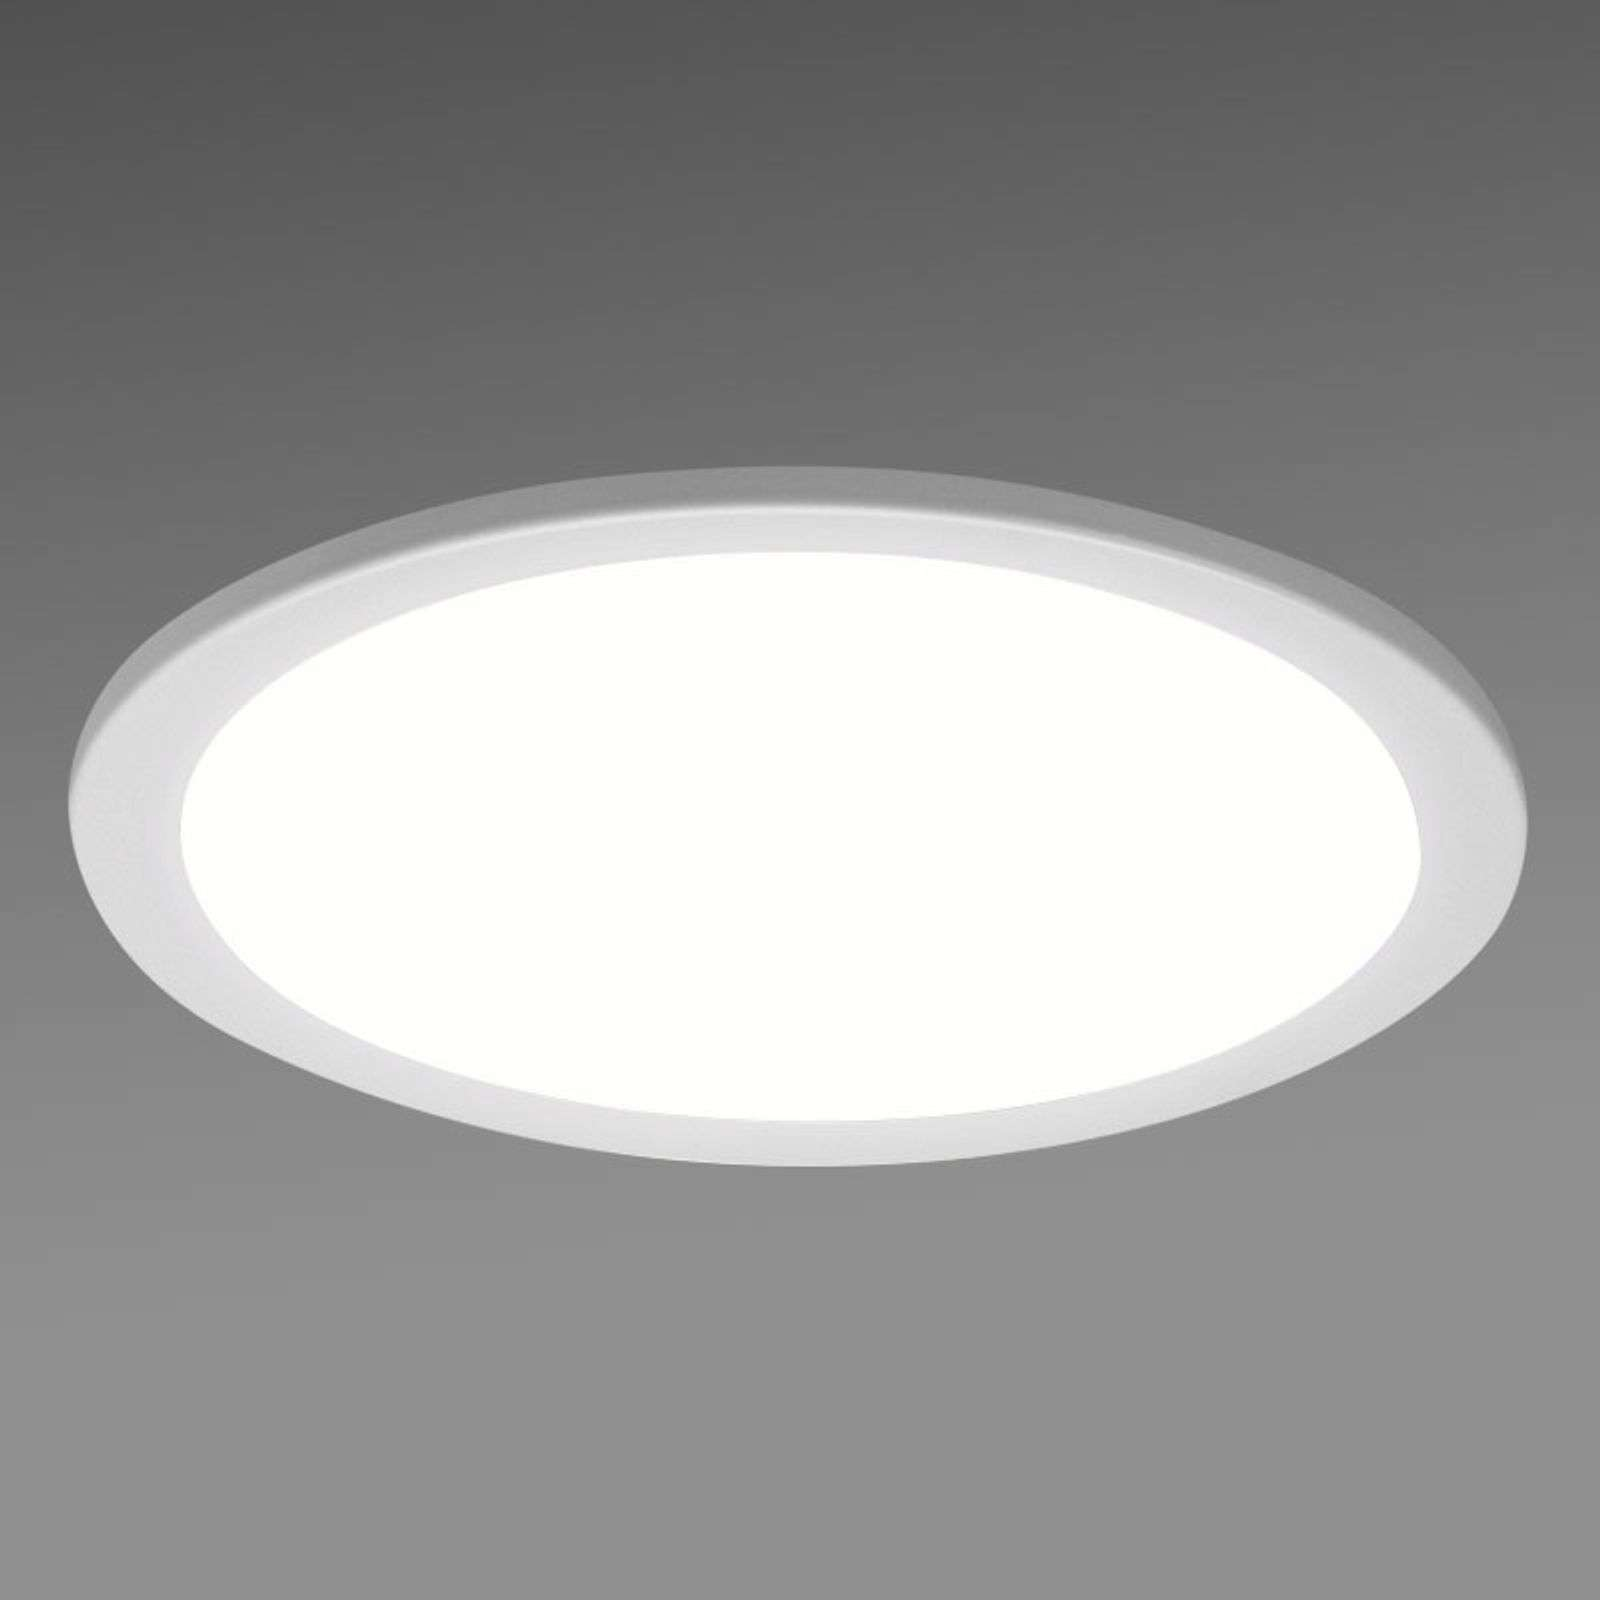 Downlight encastrable LED SBLG rond, 3 000 K